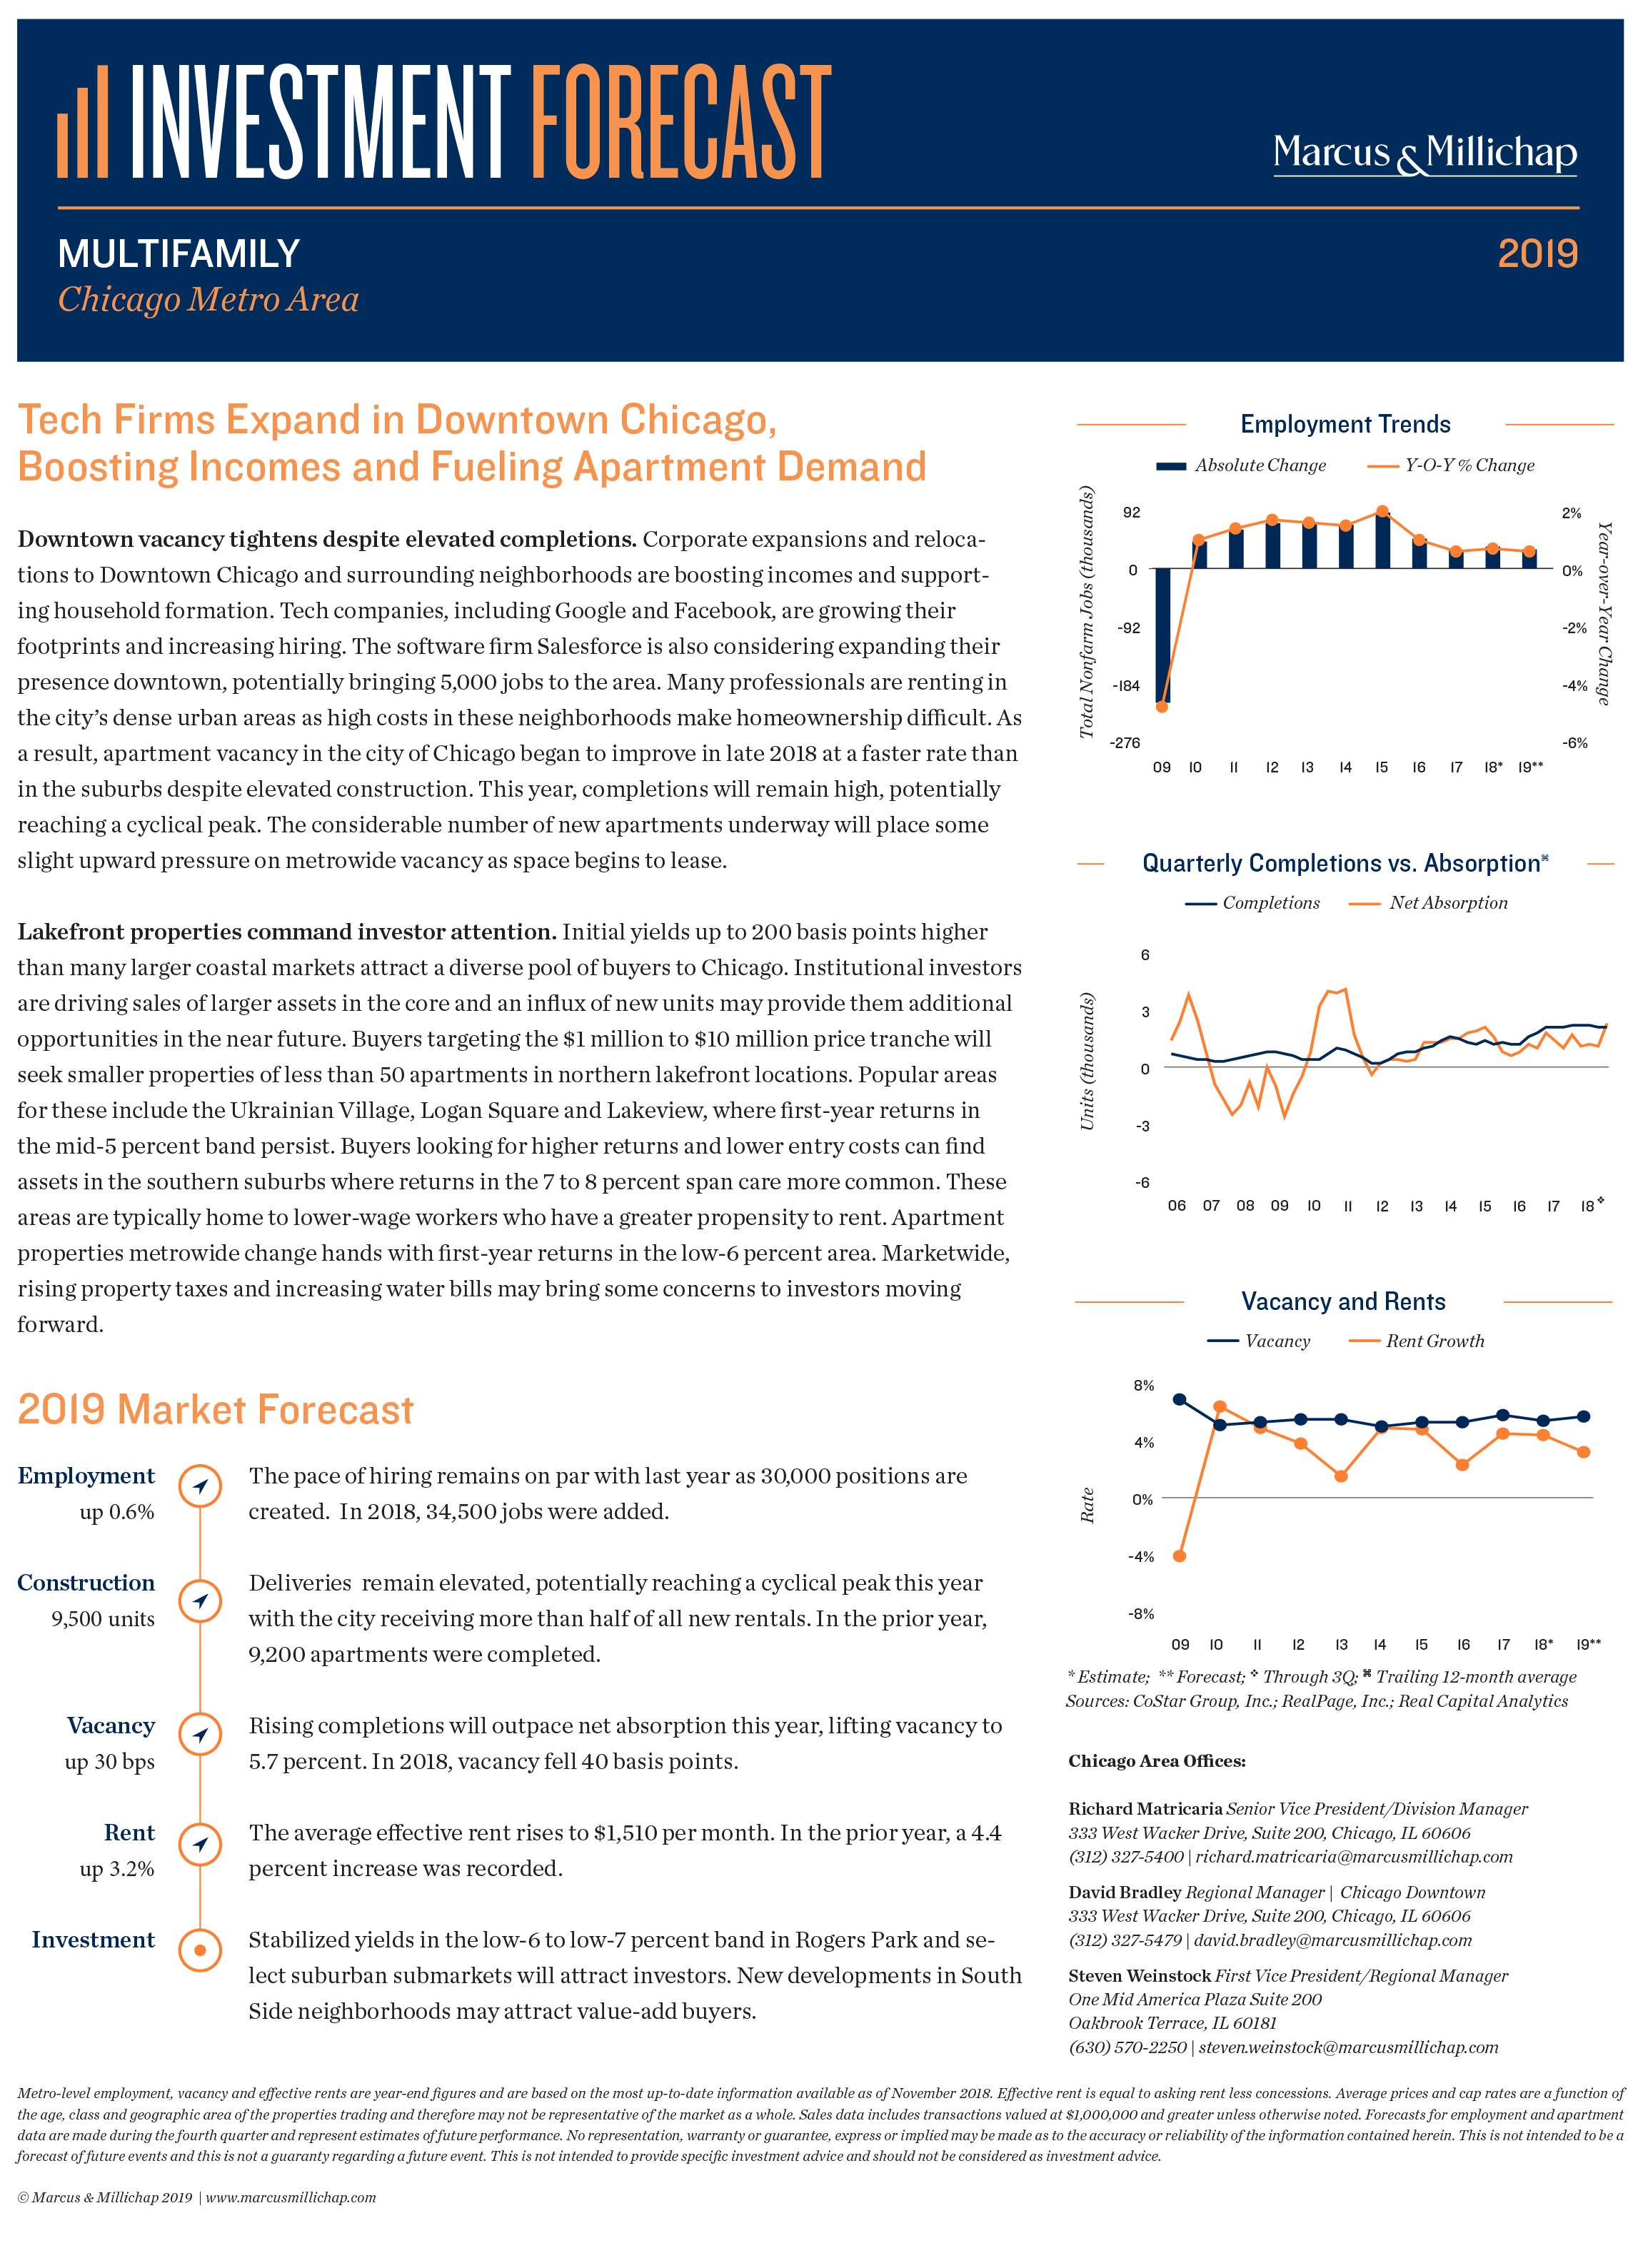 Chicago 2019 Multifamily Investment Forecast Report.jpg